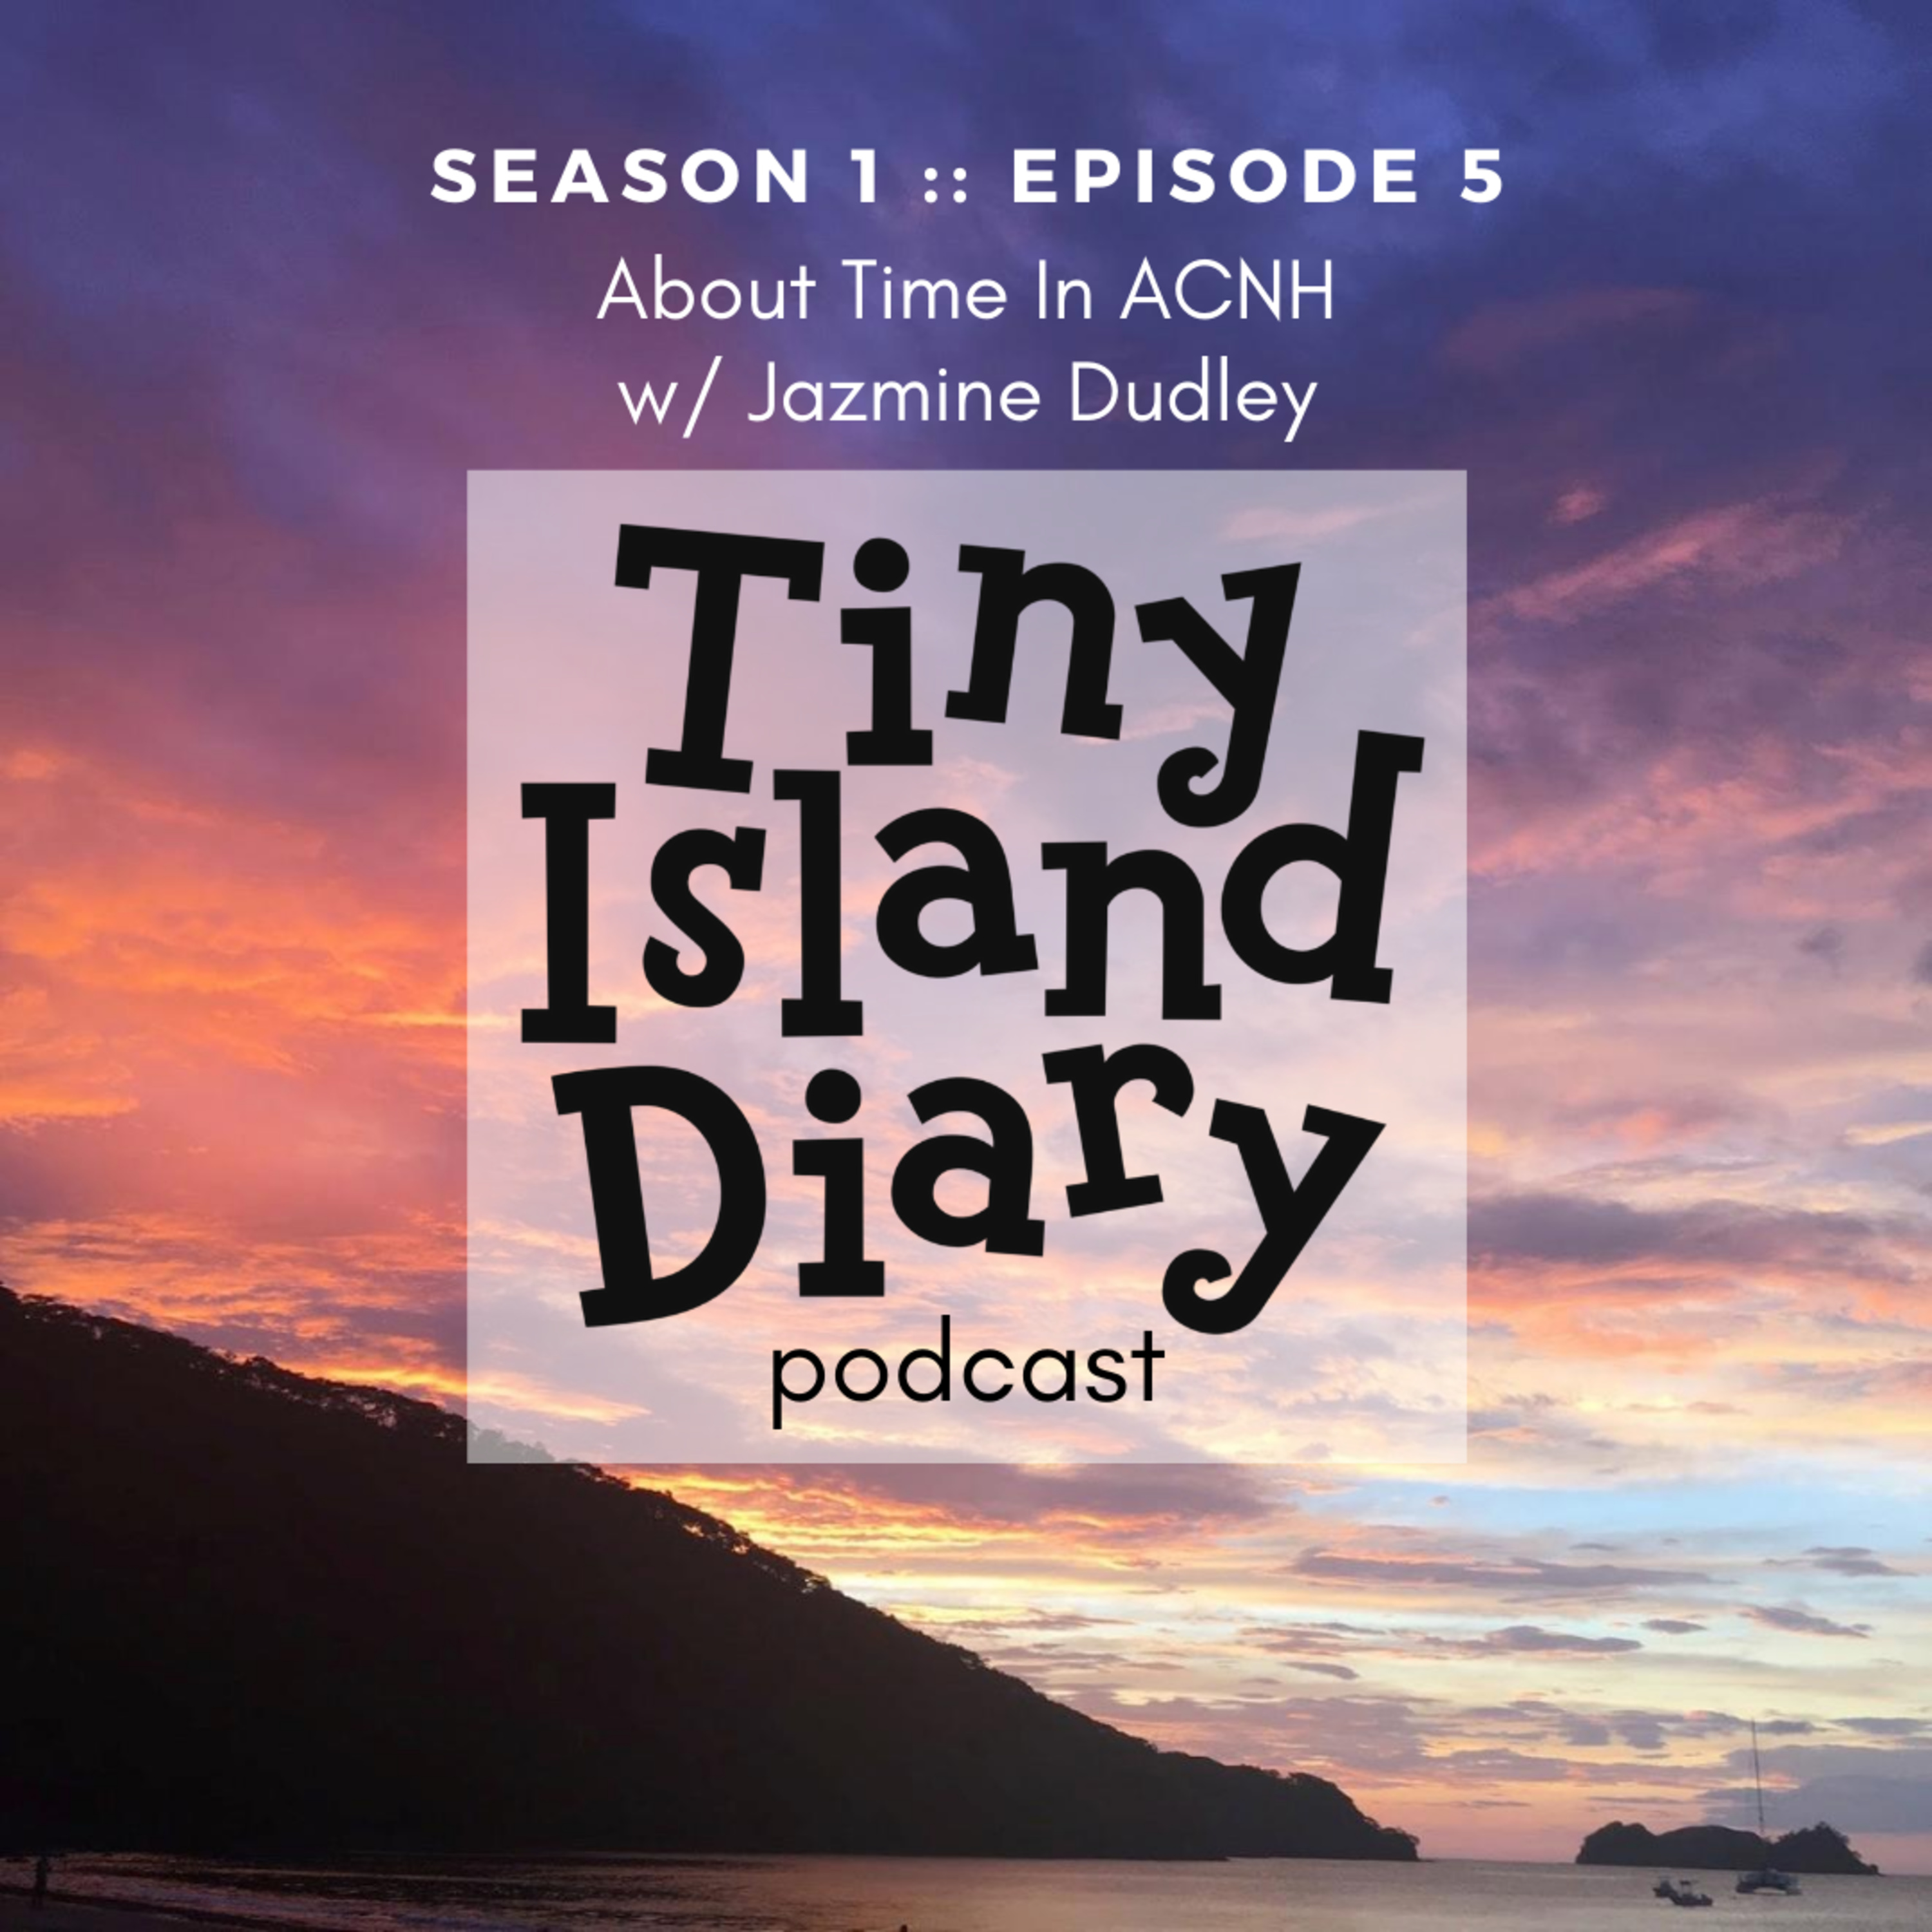 S1E5: About Time: Time Travel, #ACNH in Pandemic Times, and DLC Ensuring Future Play Time w/ Jazmine Dudley